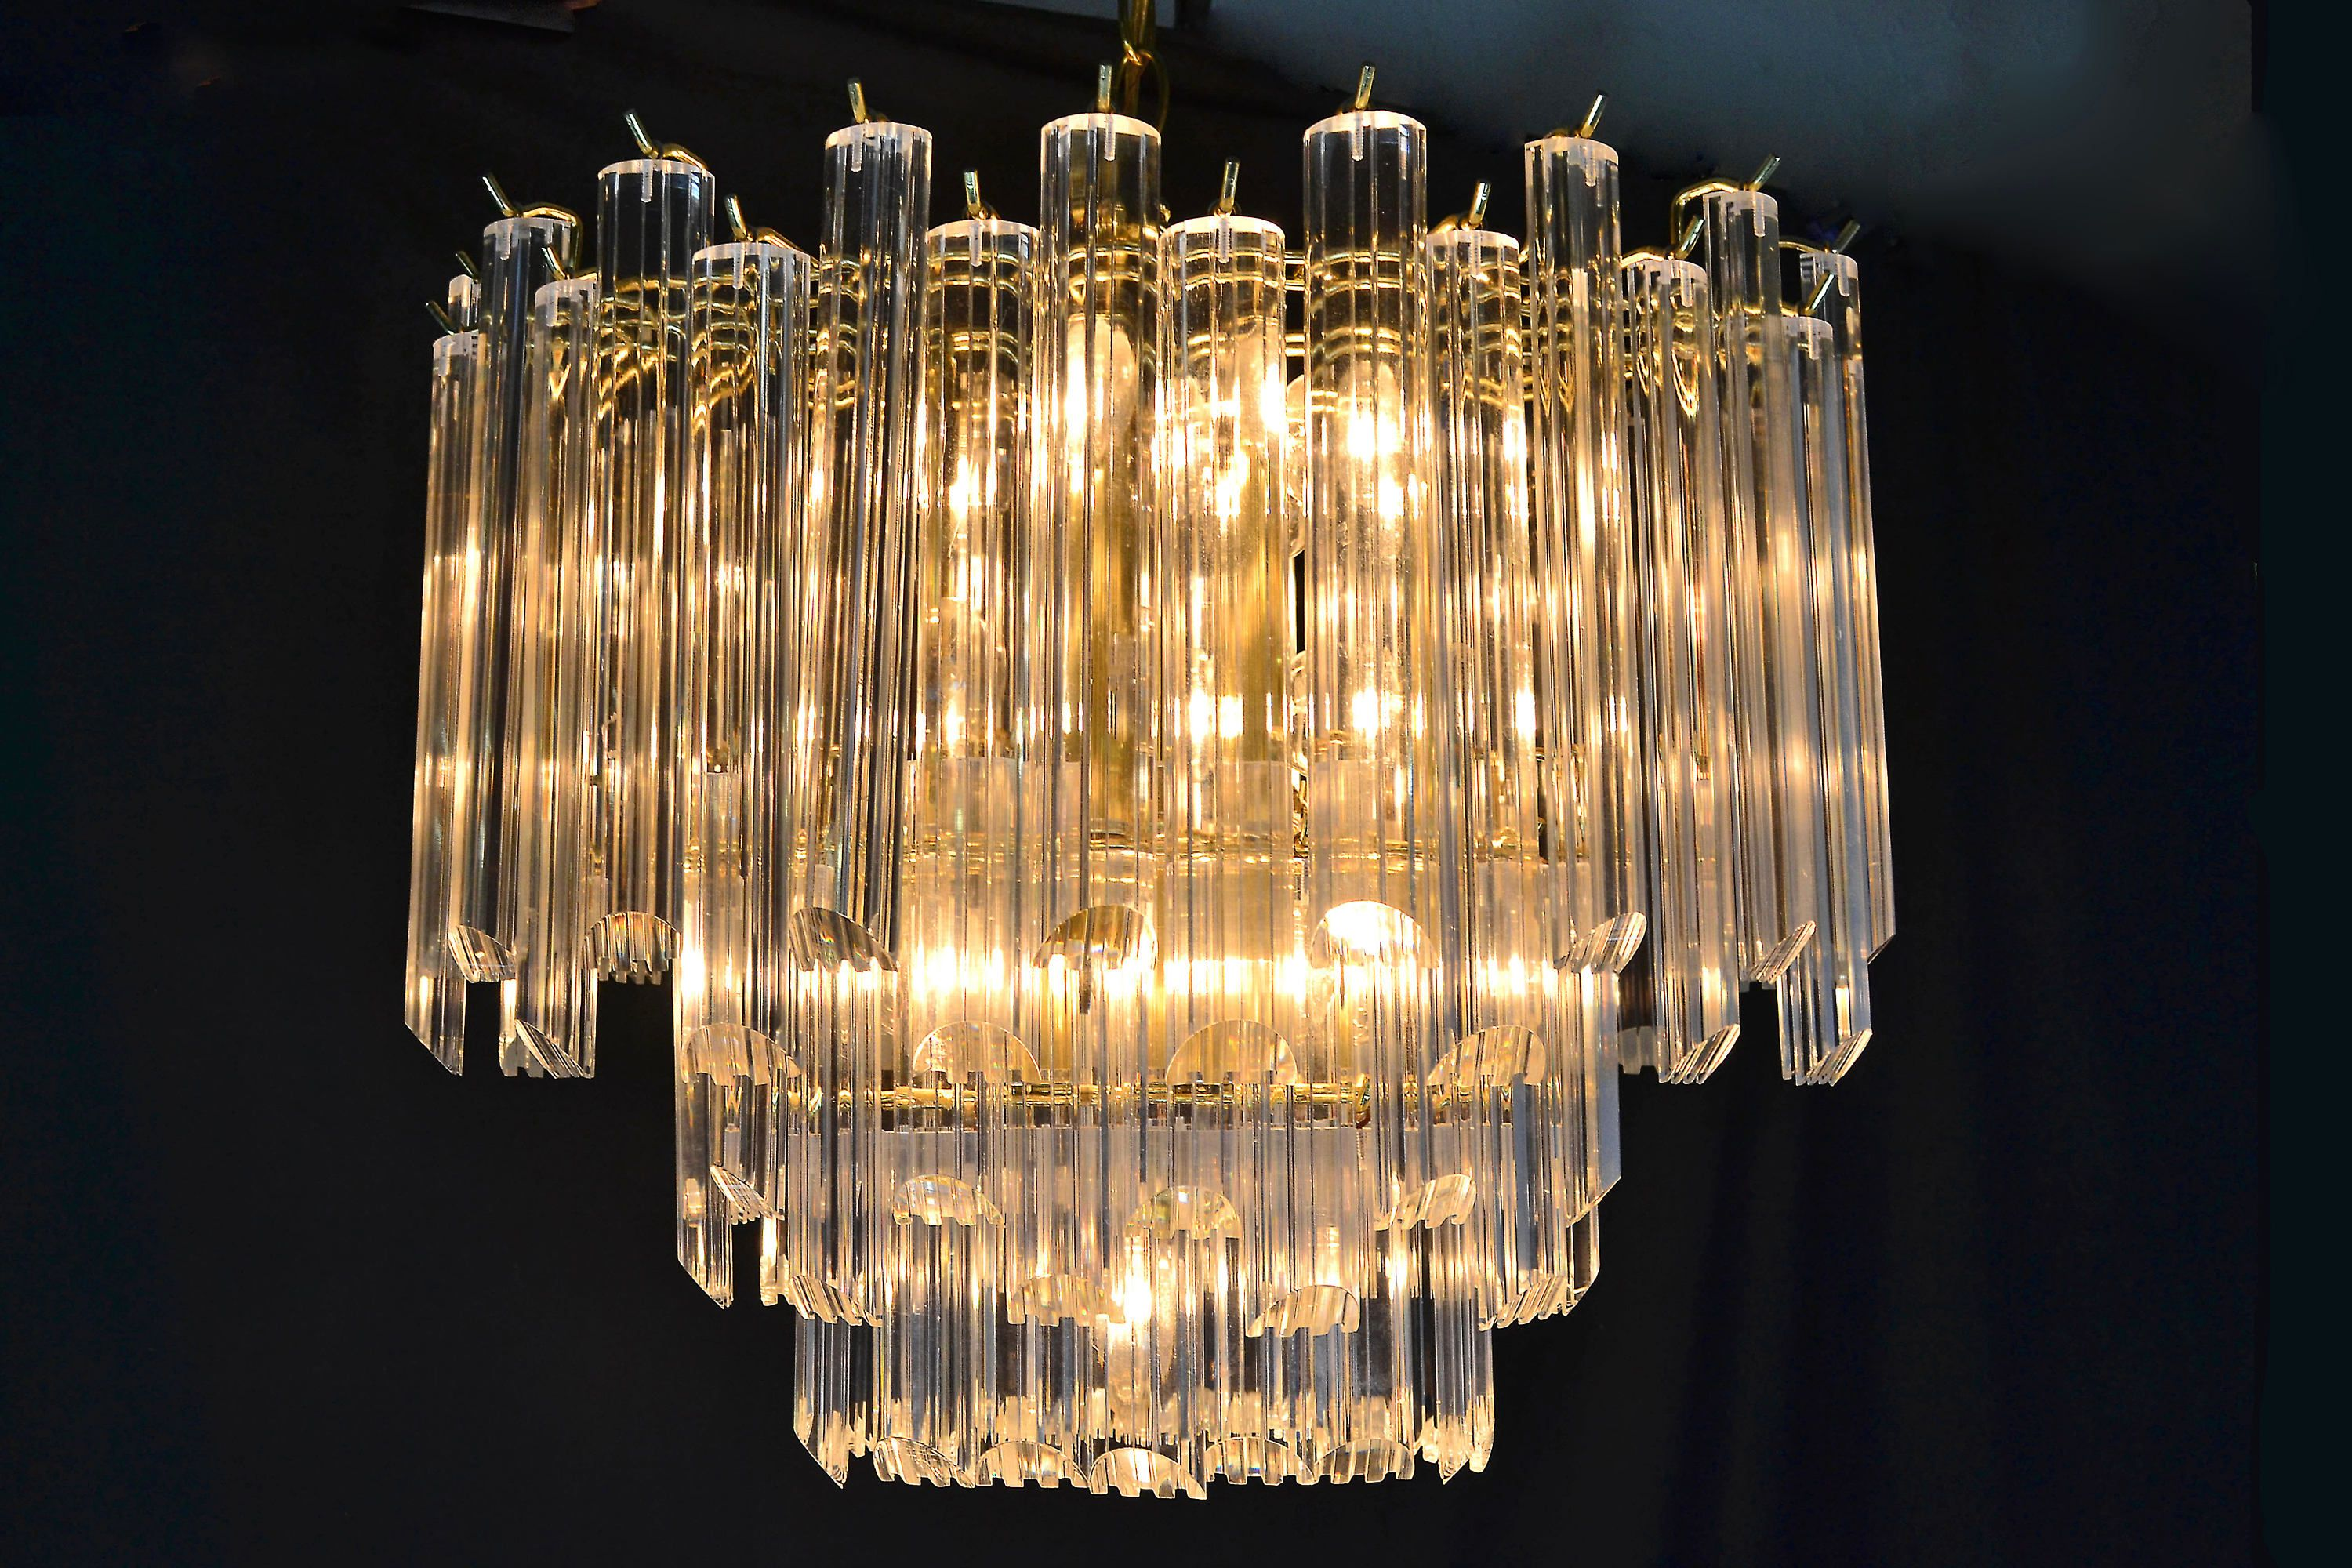 Mid Century Modern Oval Chandelier 10 Lights By Triarch Lighting